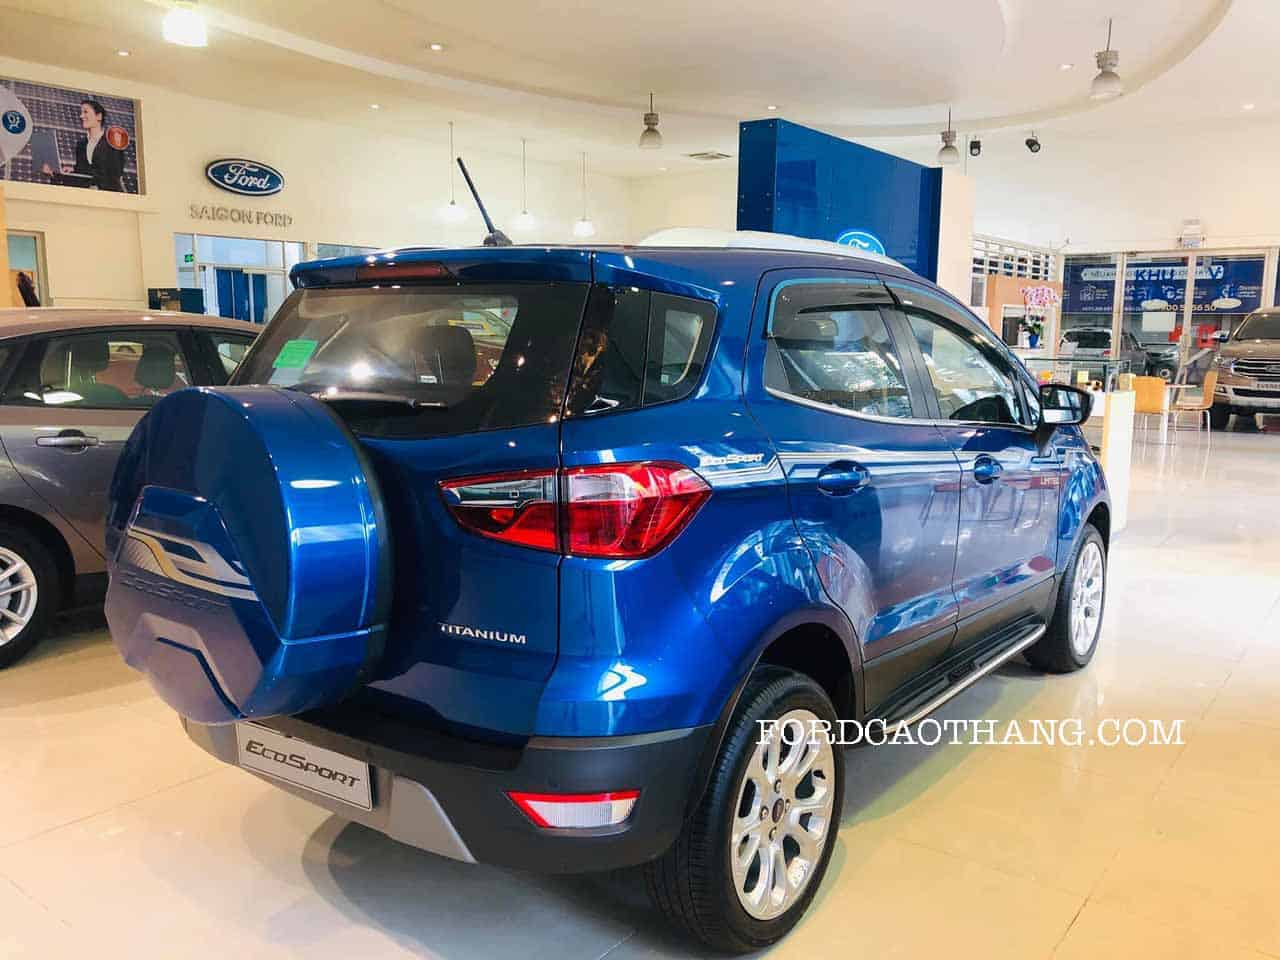 Giá xe ford ecopsort titanium 2020